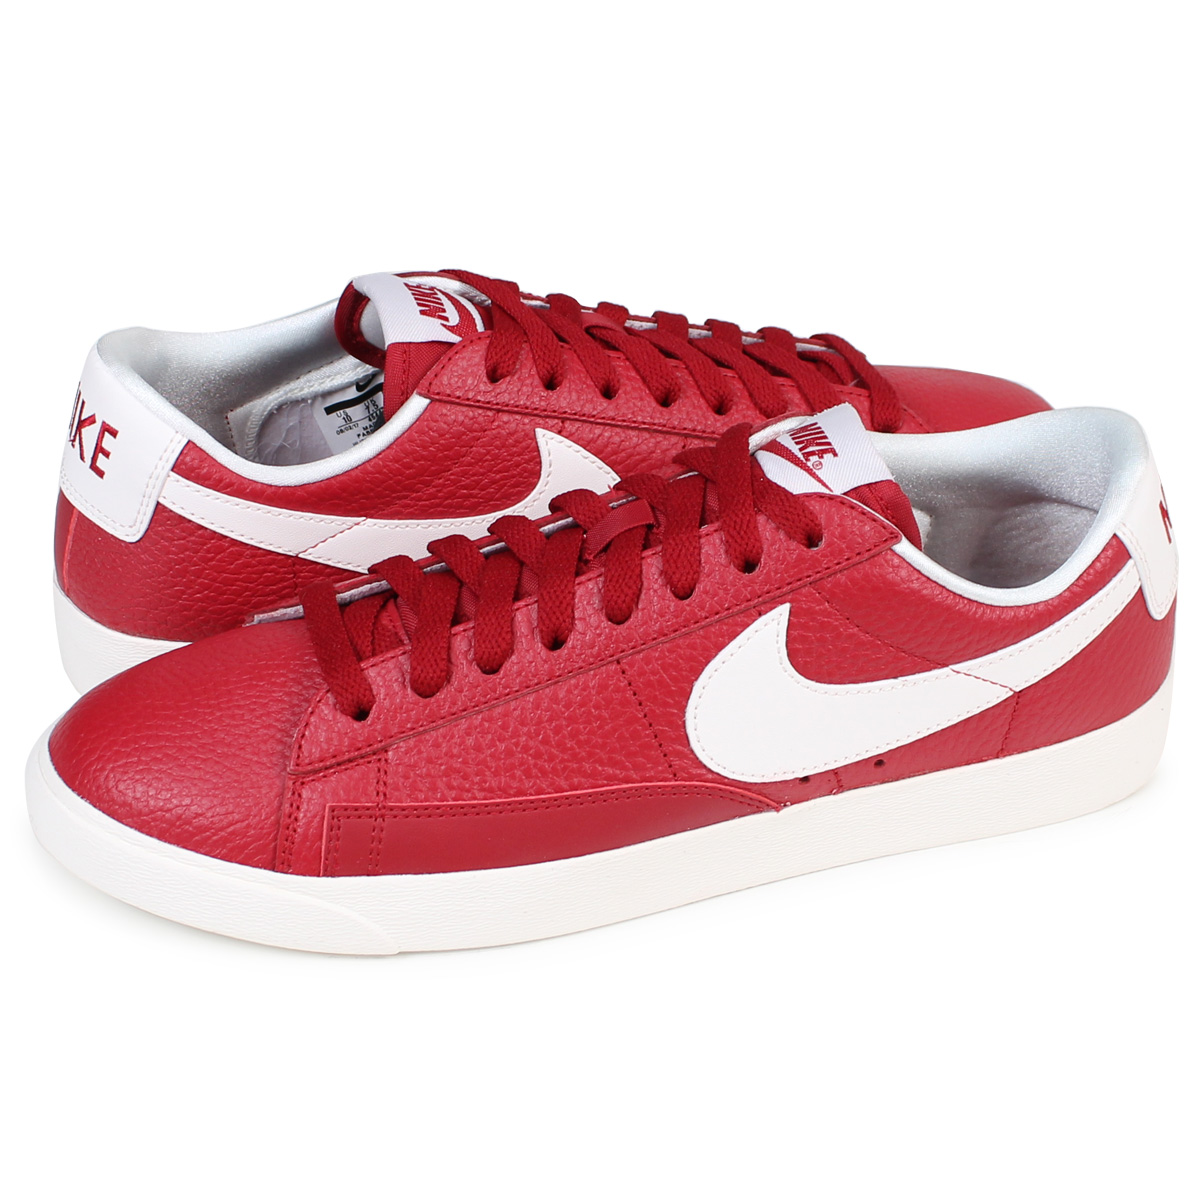 the best attitude 5c096 38f2a NIKE WMNS BLAZER LOW PREMIUM Nike blazer Lady s sneakers 454,471-601 men s  shoes red ...